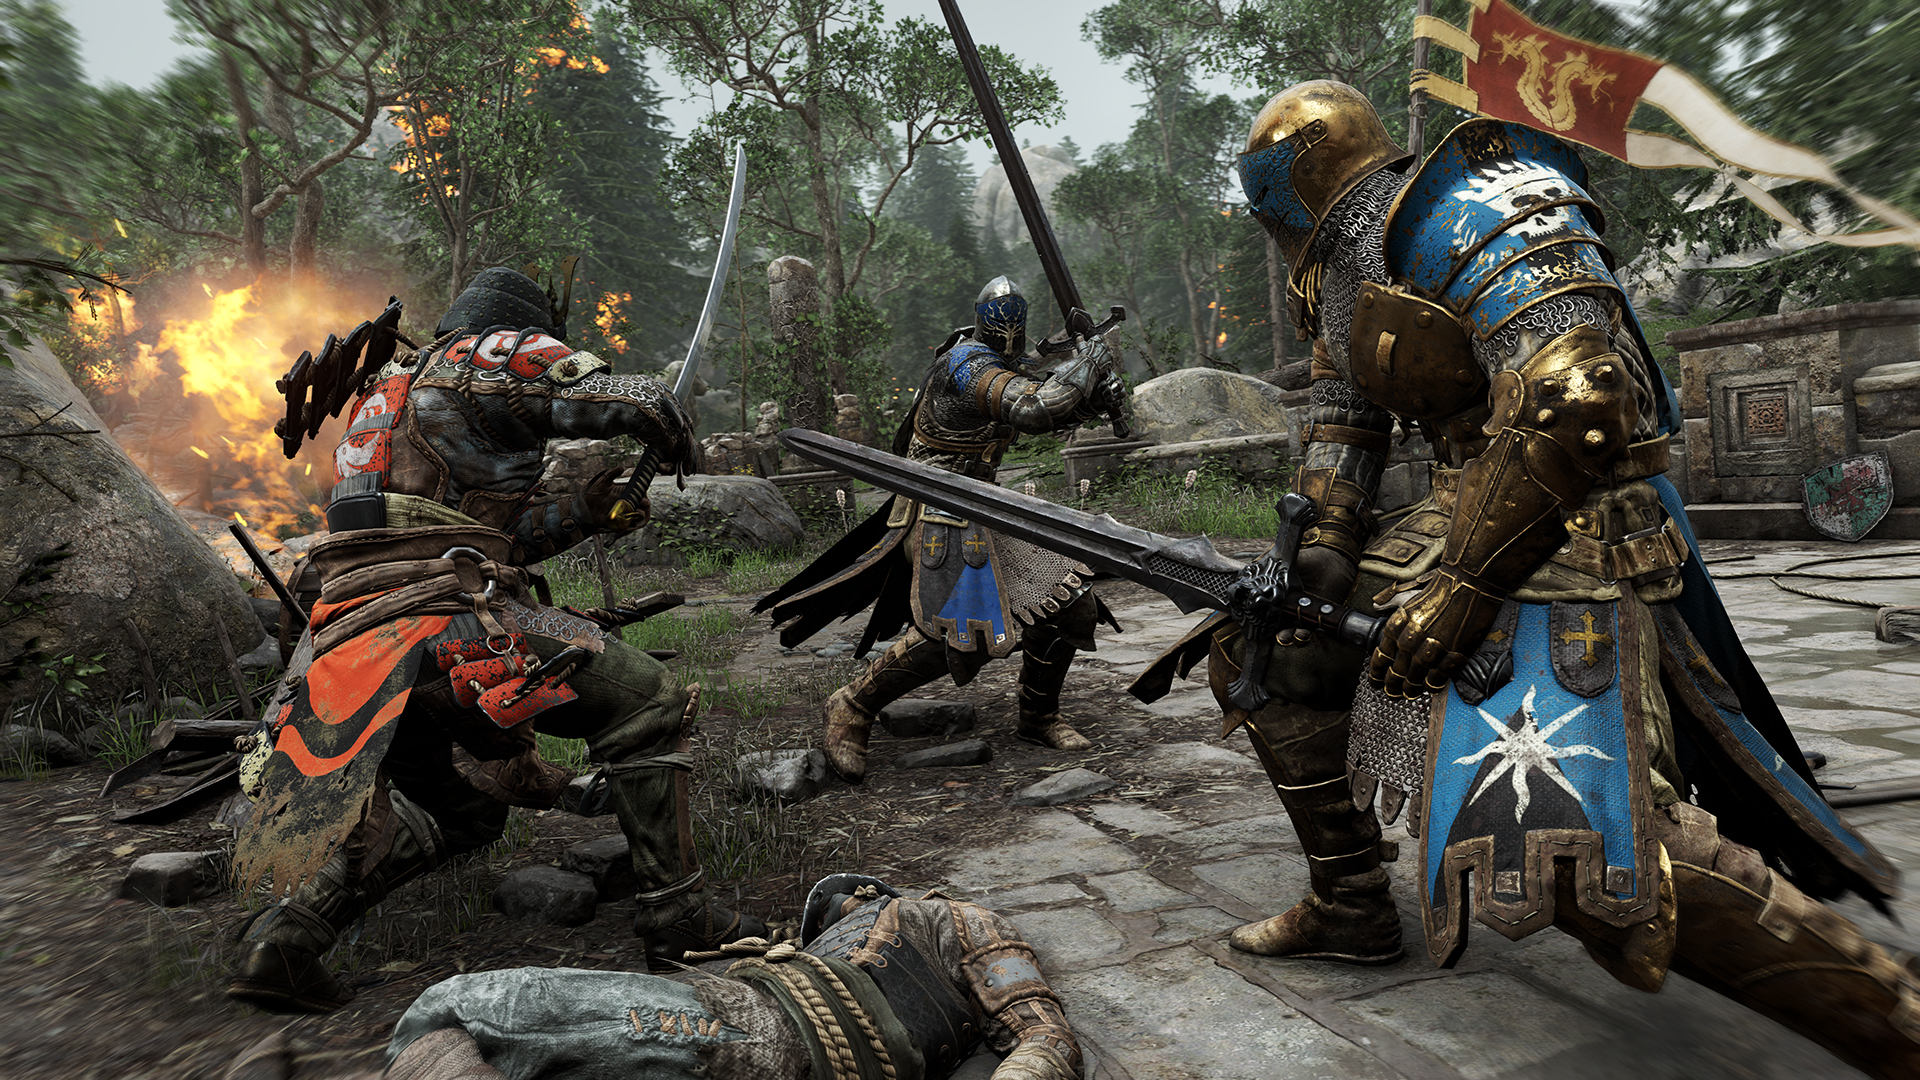 FH screenshot 02 FULL 255373 For Honor Gets Three Glorious New Character Trailers